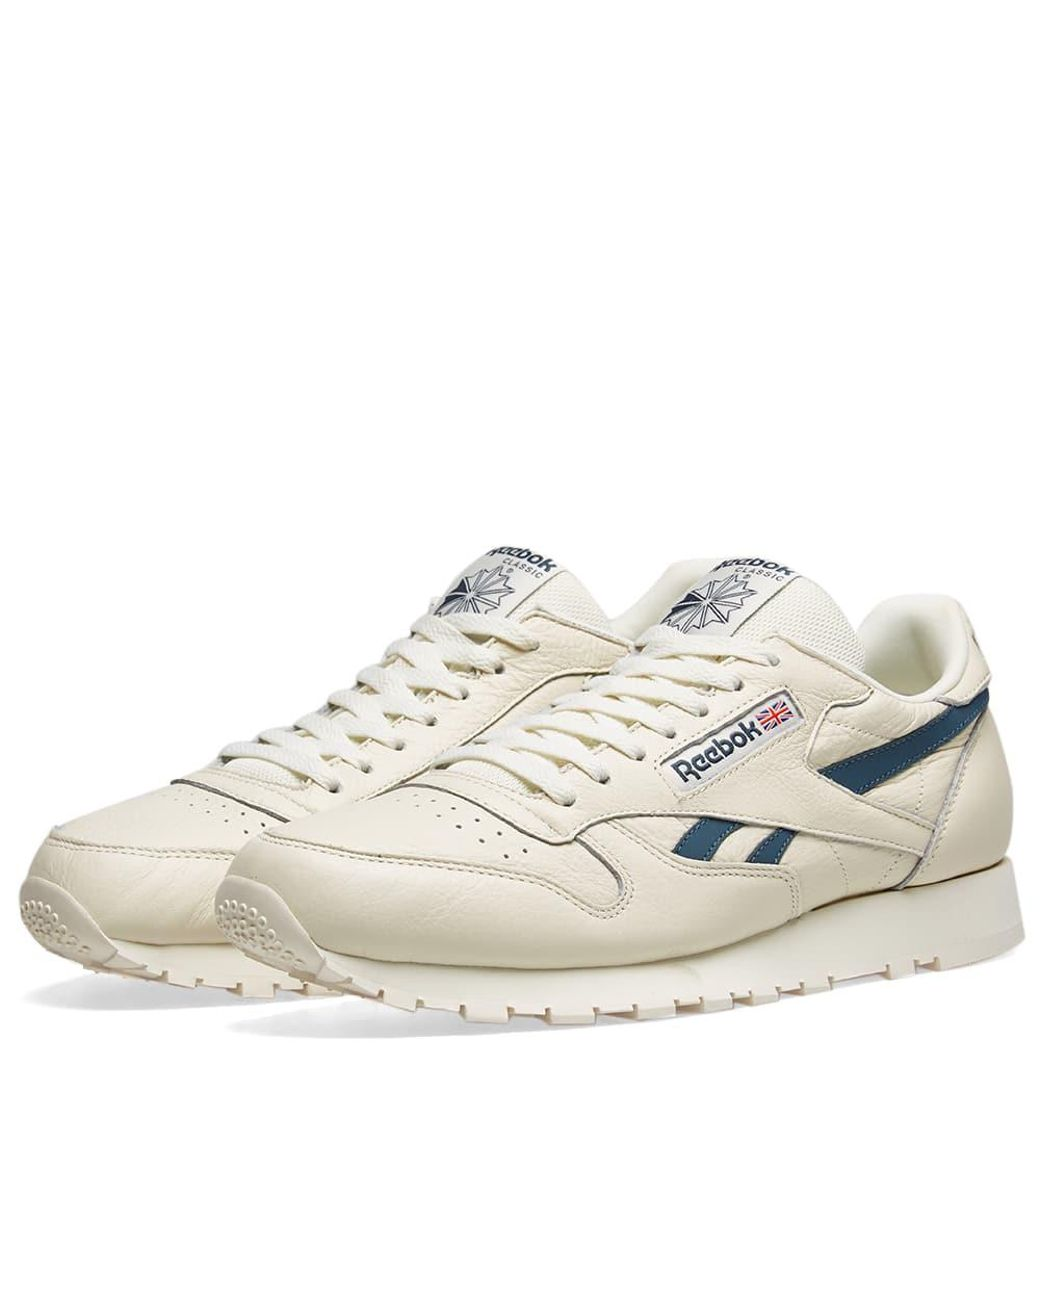 Reebok Classic Leather Vintage in White